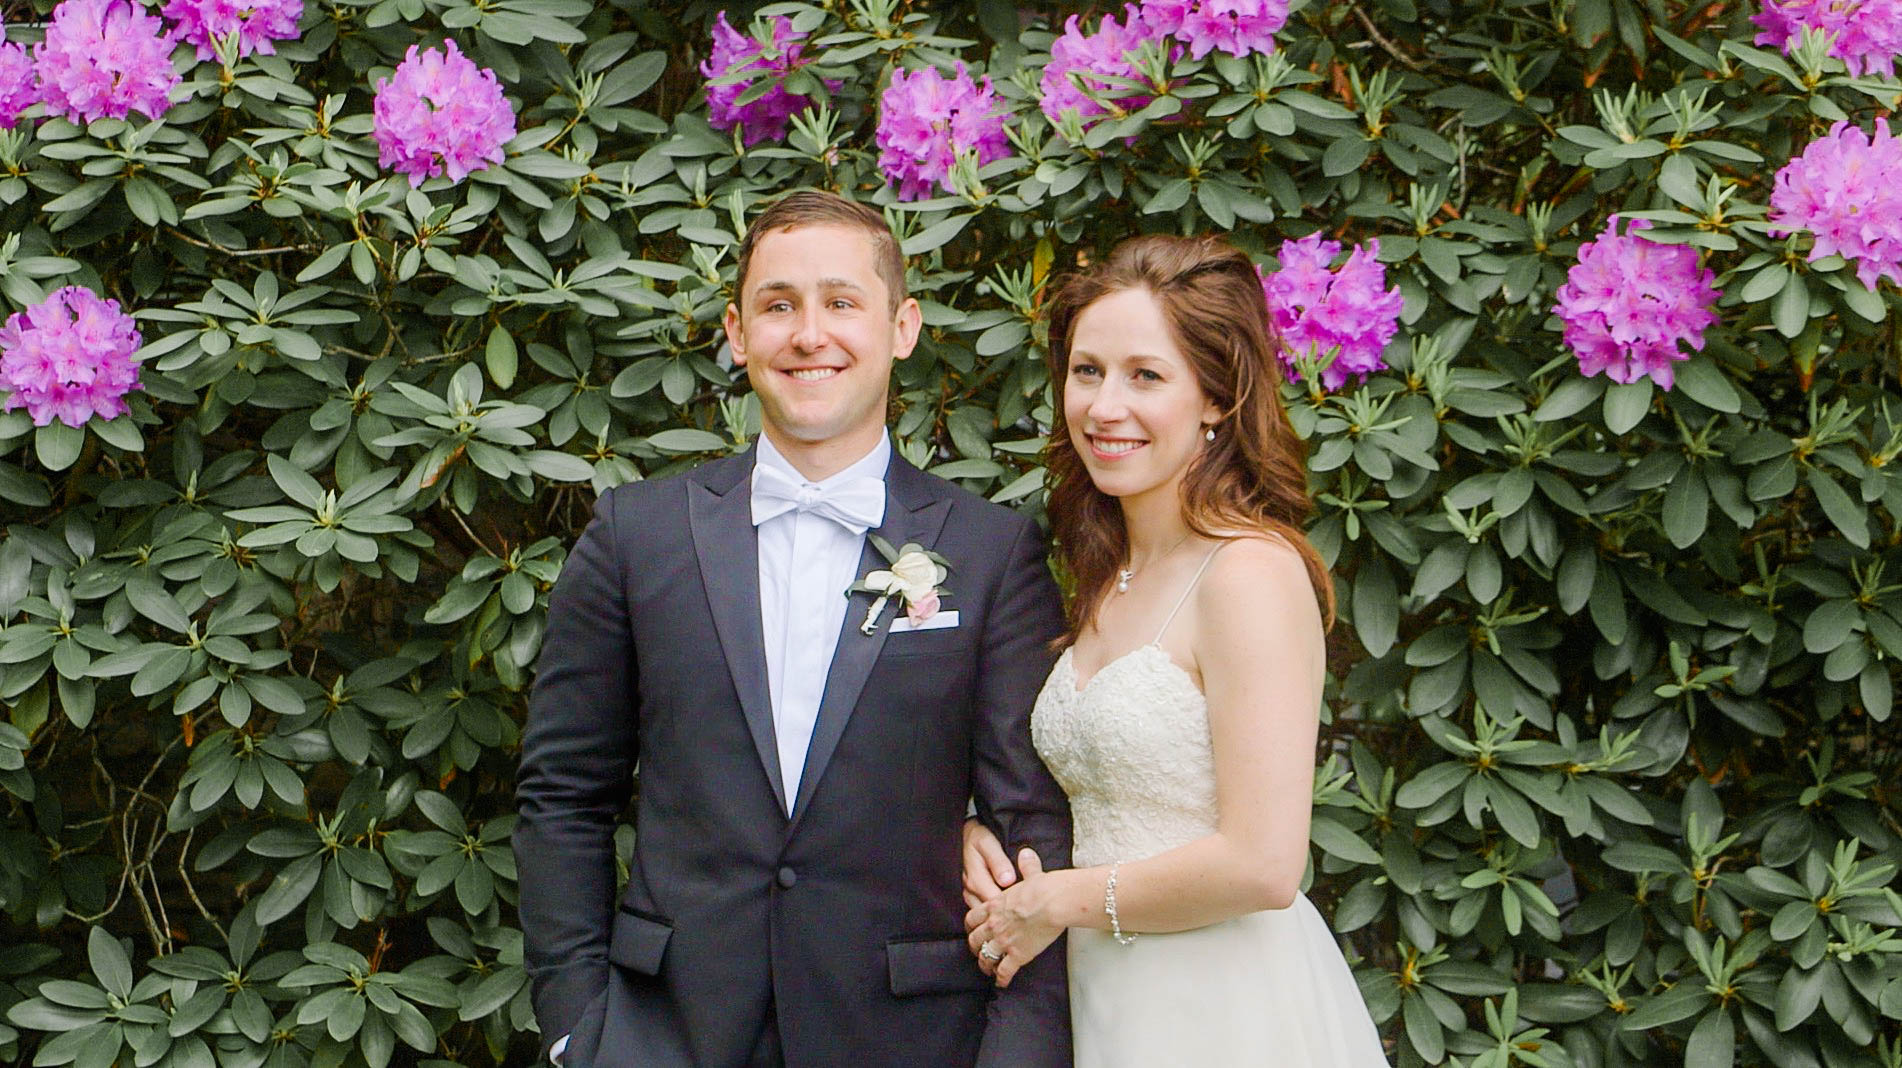 Sarah + Austin | Portland, Connecticut | Saint Clements Castle